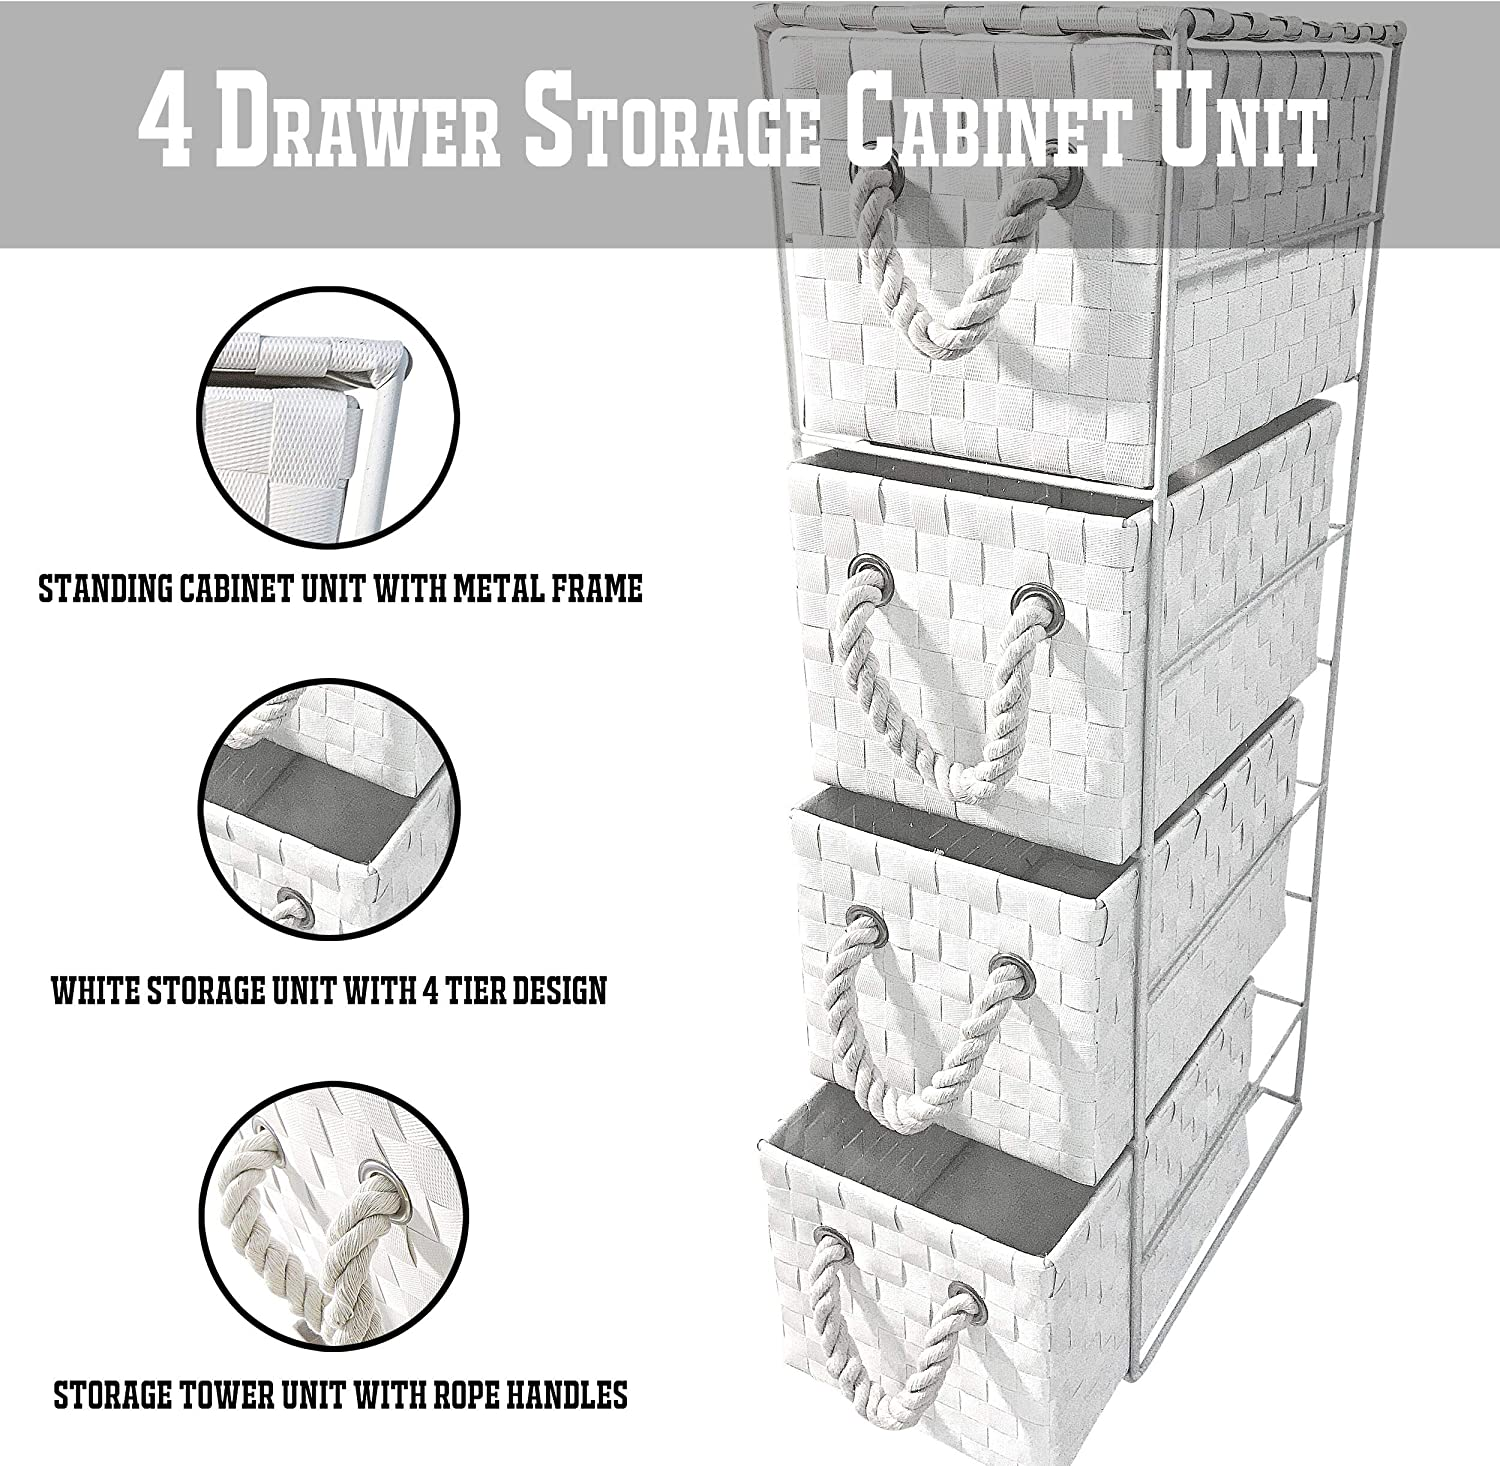 K-ONE 4 Drawer Storage Cabinet Tower Basket Unit White PP Bathroom/Office/Shed/Home